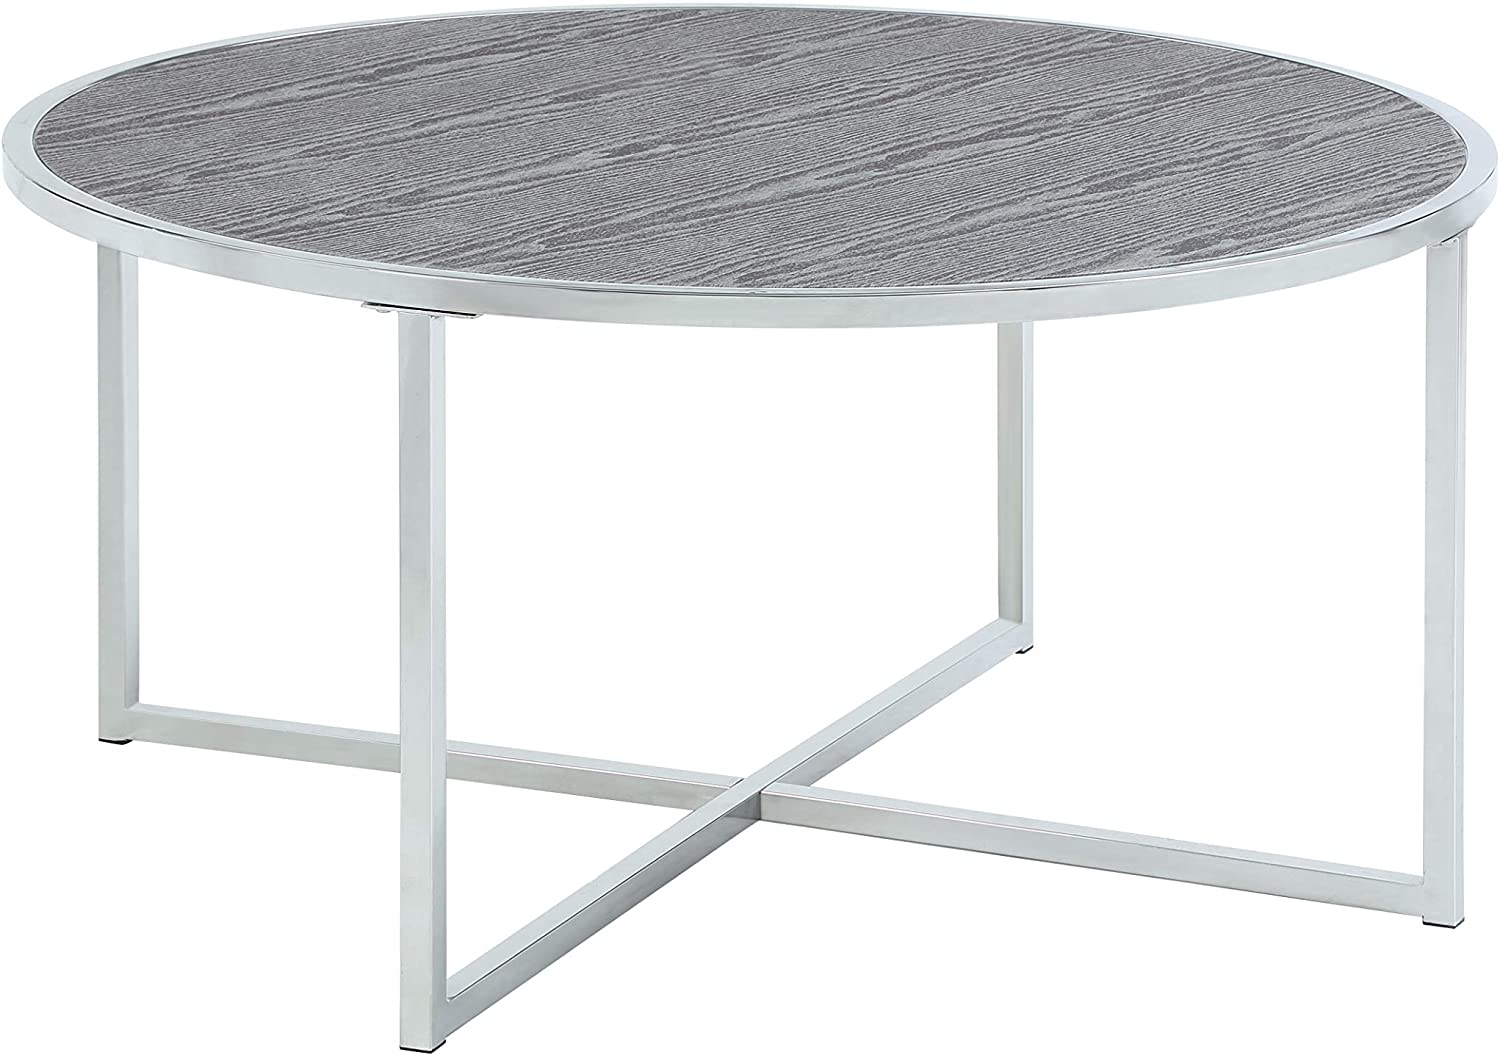 Abington Lane - Contemporary Circlular Coffee Table - Fashionable Chrome Cocktail, Sofa, Office Table for Living Room and Office - (Heathered Grey)